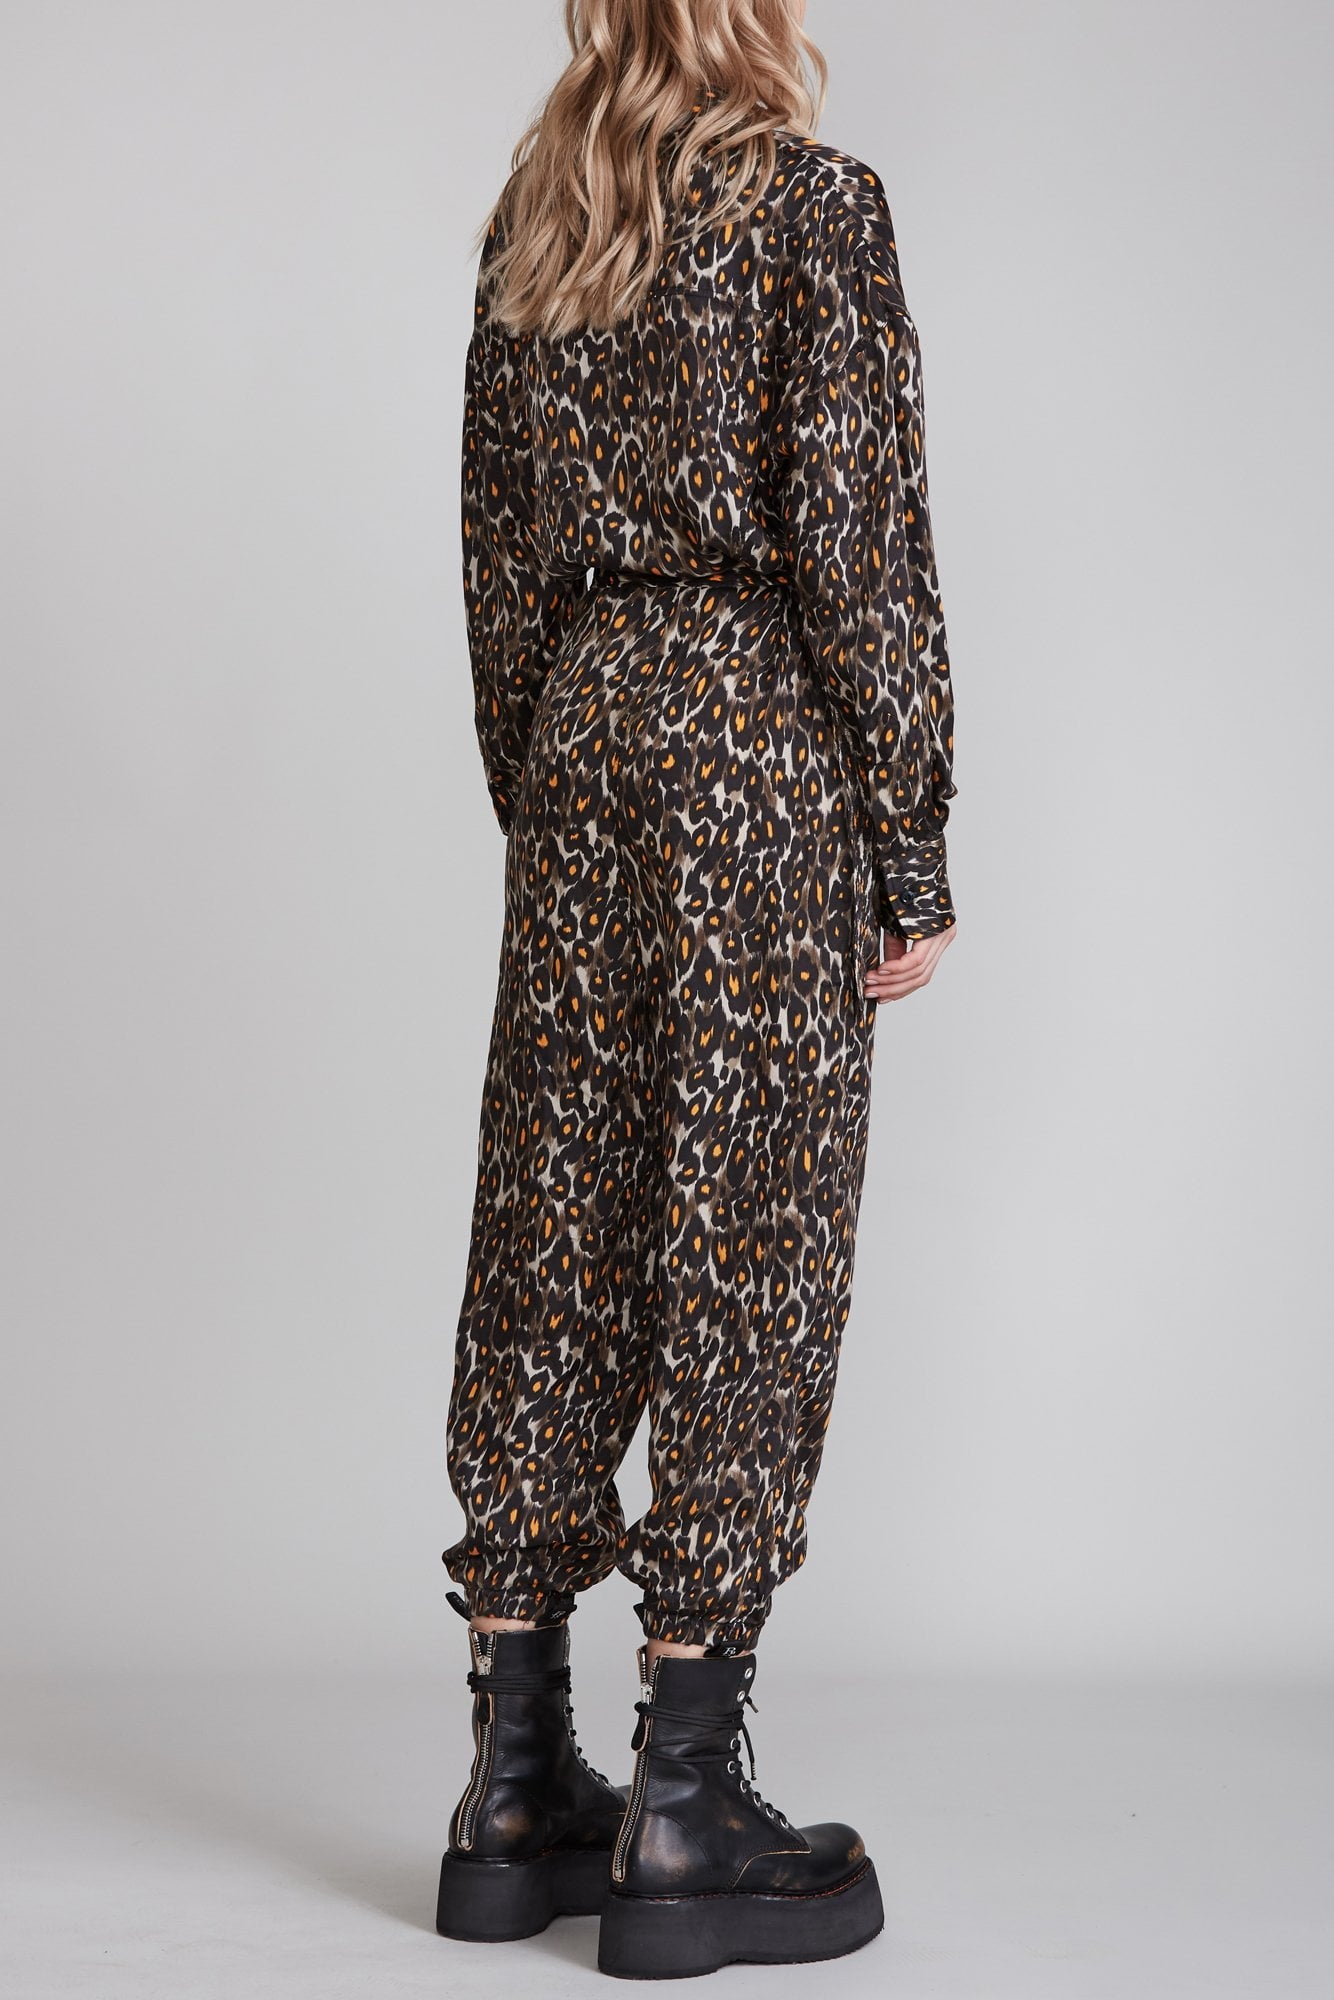 Utility Jumpsuit - Grey and Orange Leopard